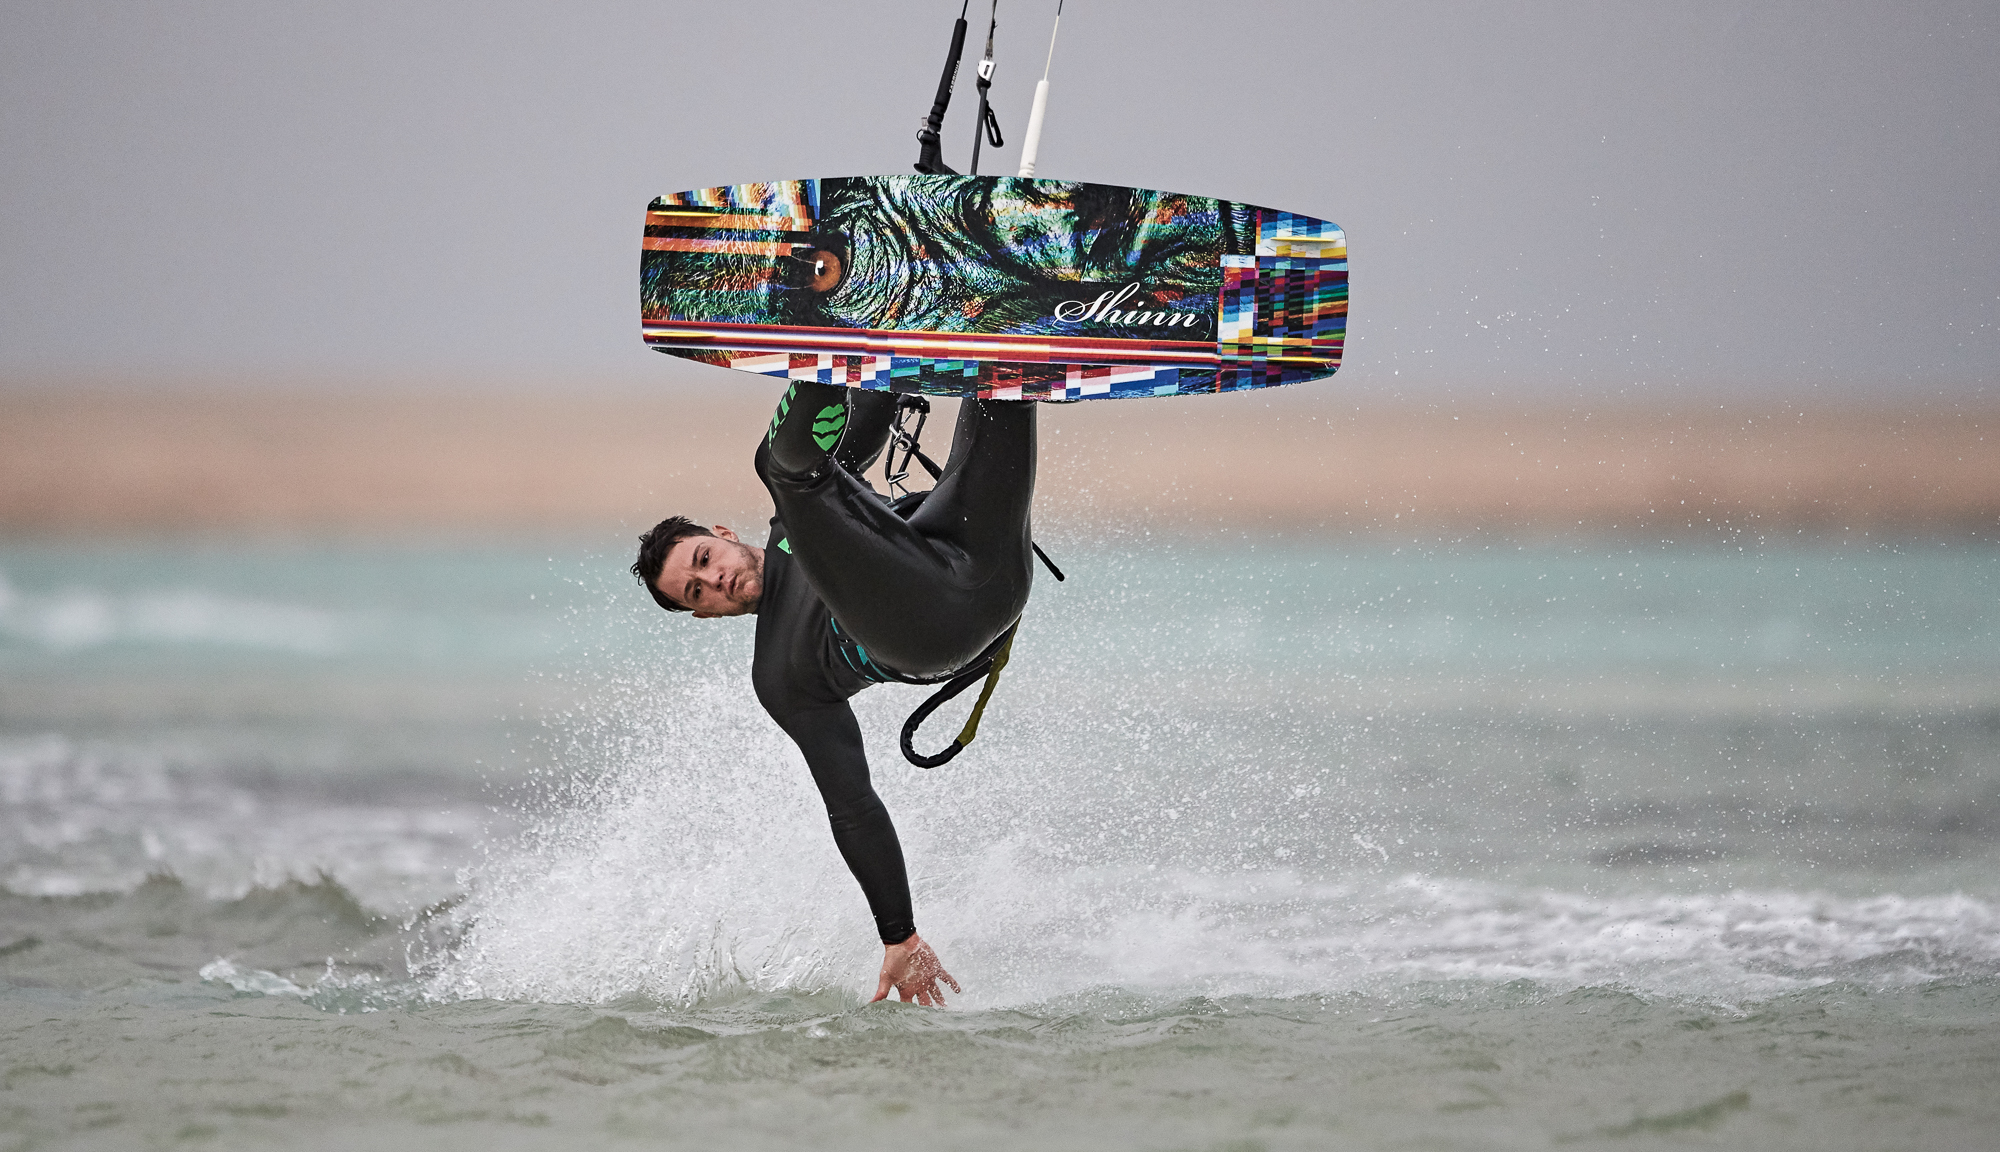 Kiteboard Shinn MONK CHROMATIC (132až140cm) freeride